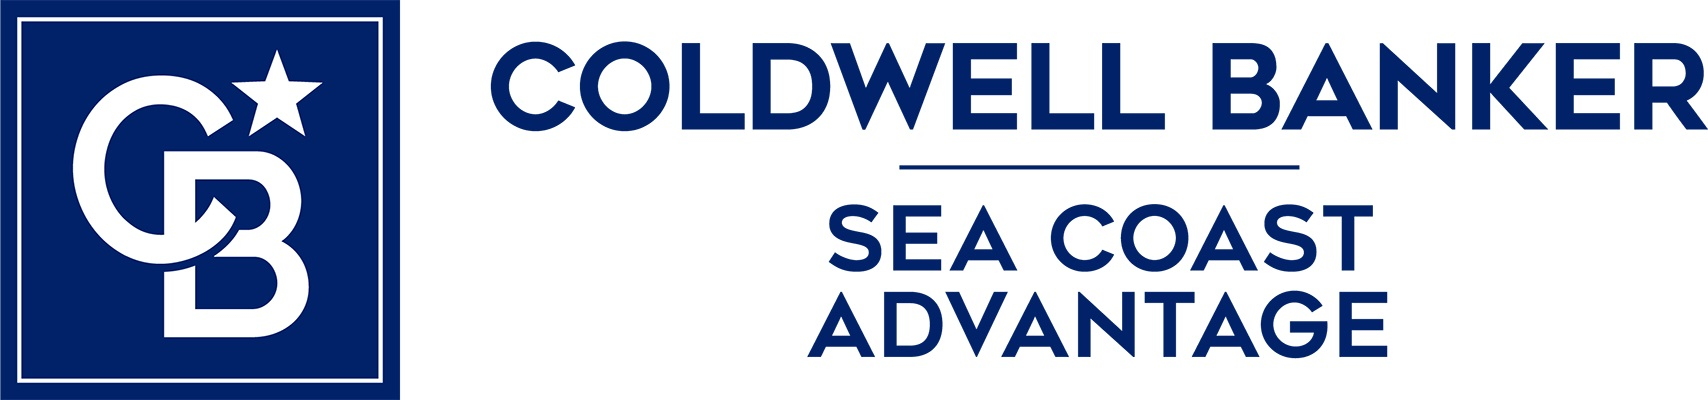 Brenton W. Tankersley - Coldwell Banker Sea Coast Advantage Realty Logo